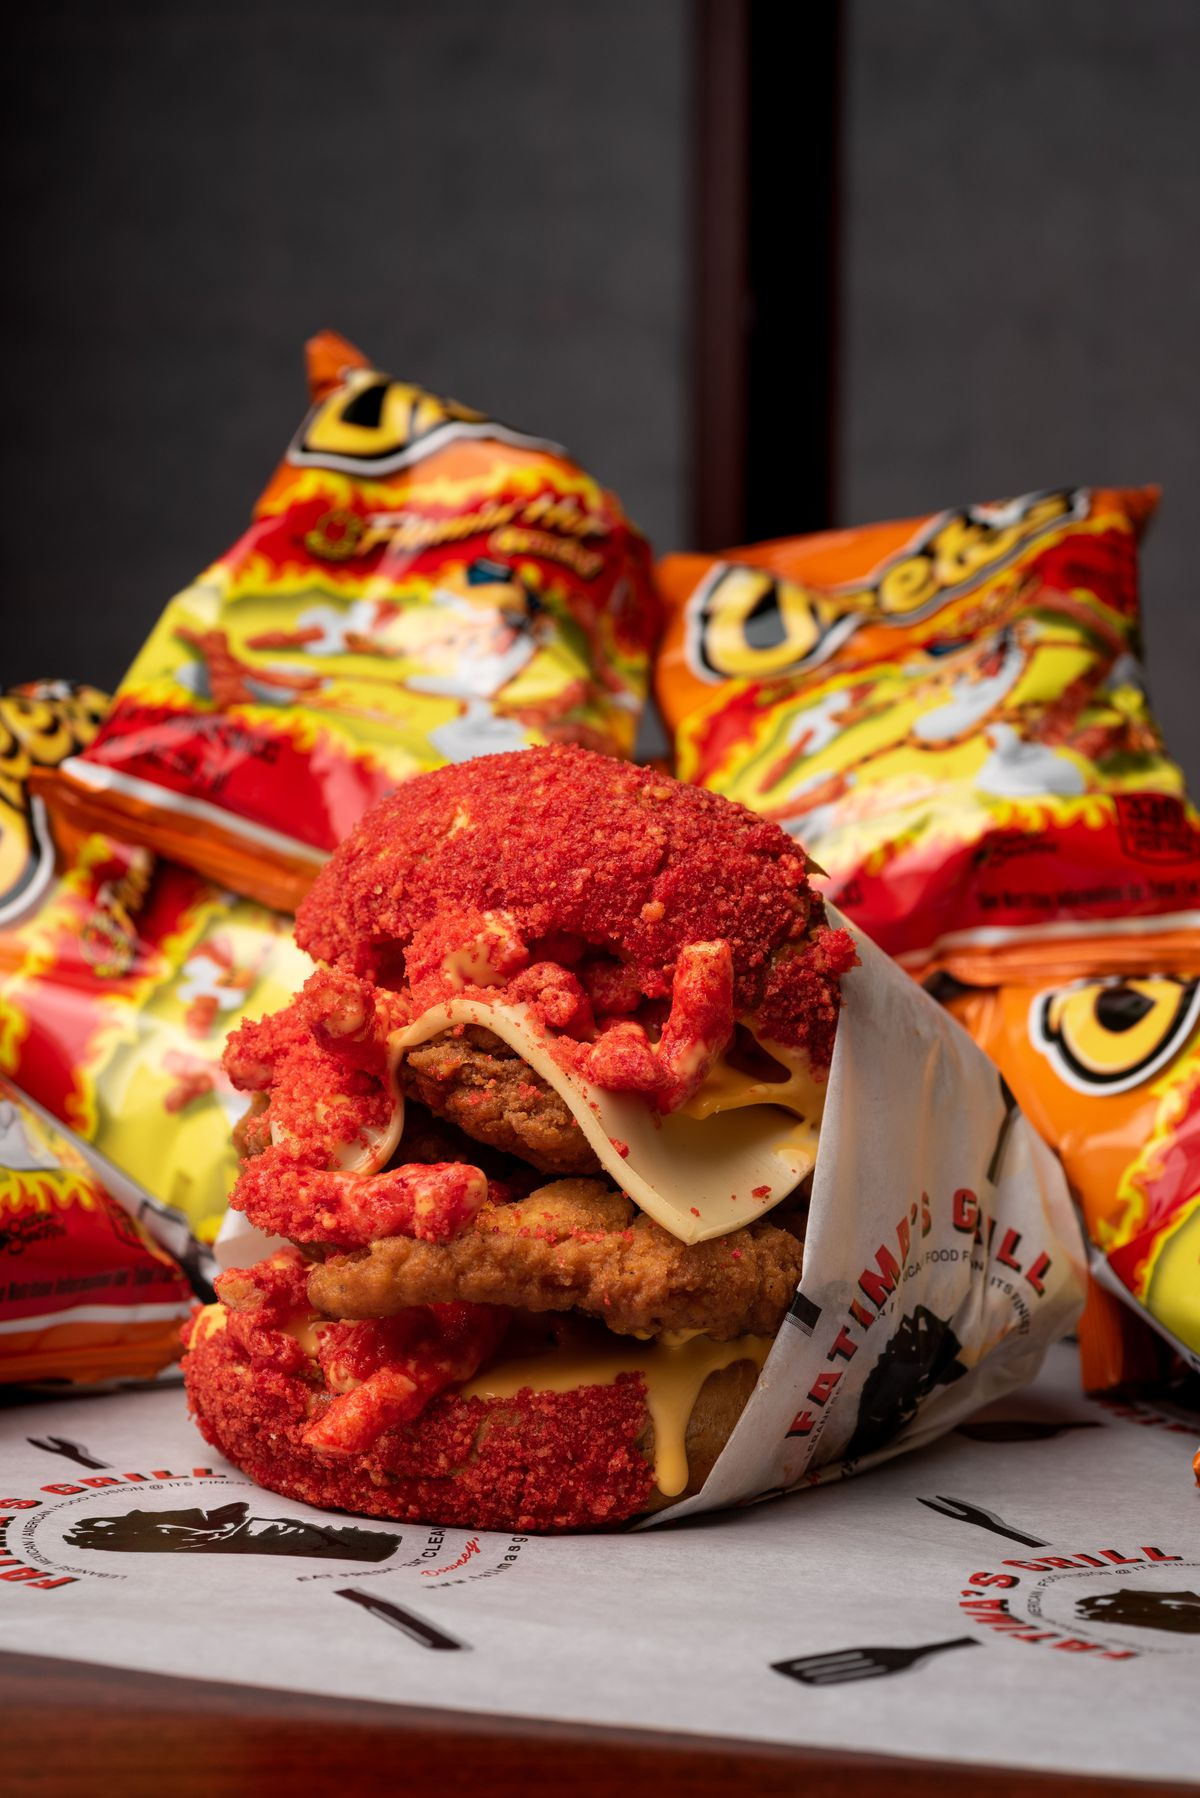 Hot Cheetos crust onto a bun and fried chicken sandwich, with more Hot Cheetos bag in the back.